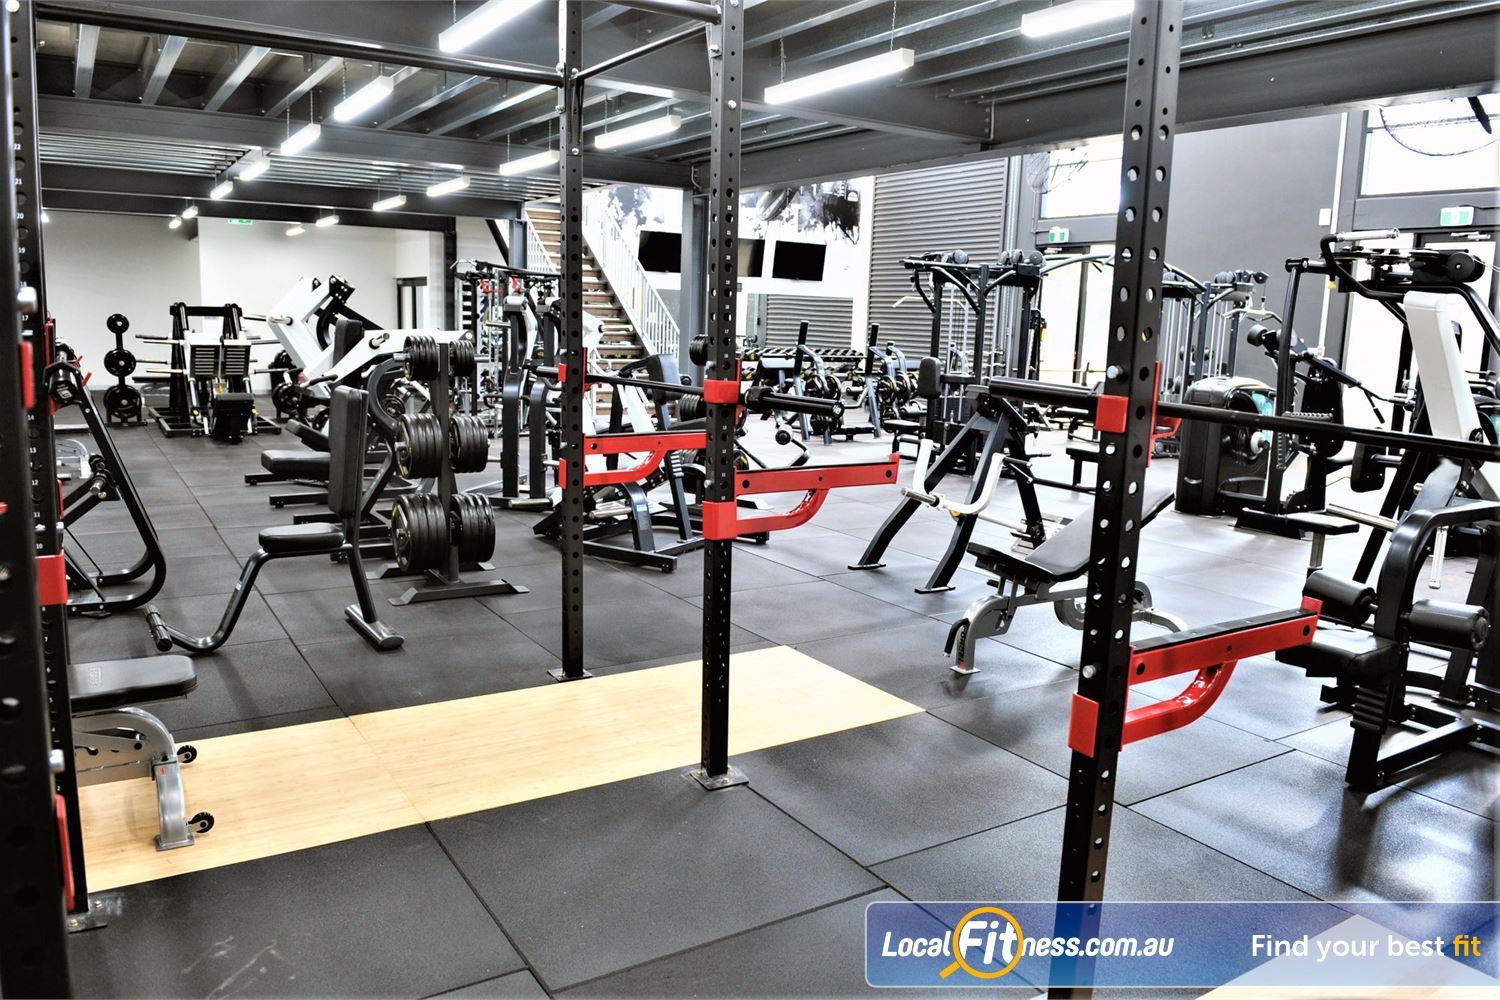 Weight of the World Fitness Near Altona Meadows Strength training wiht our lifting racks and deadlifting platforms.